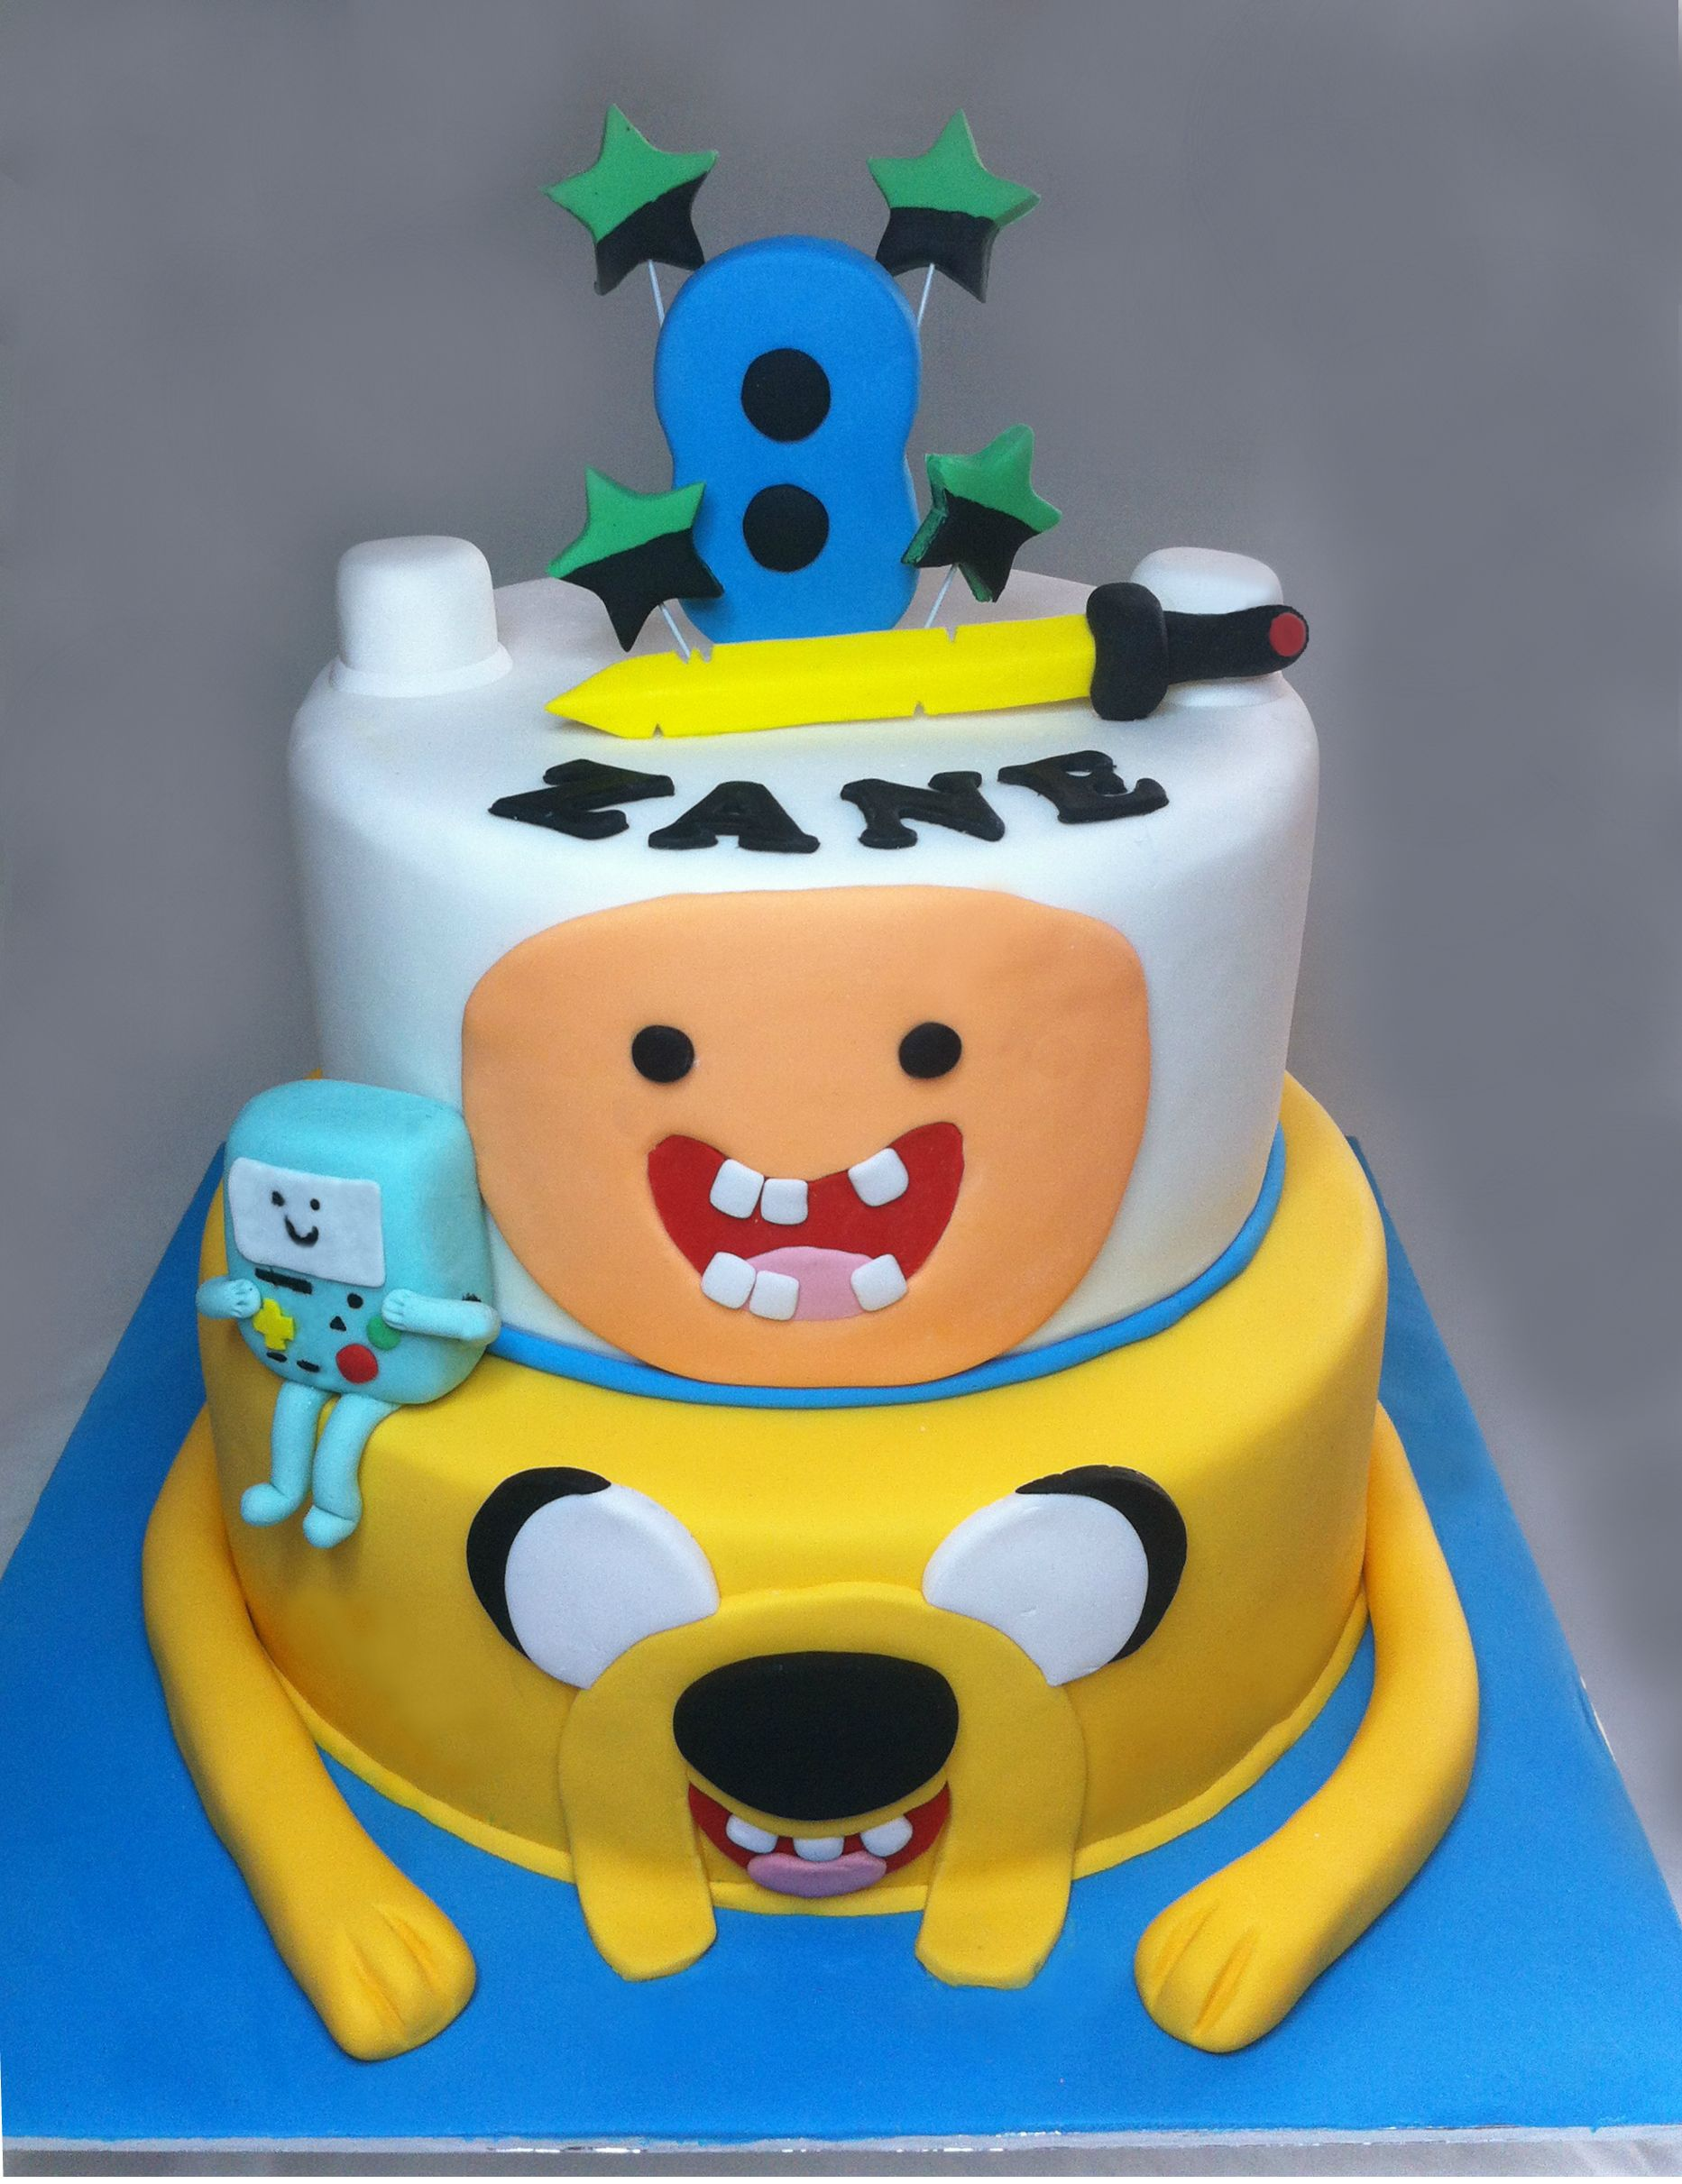 Cartoon Network Adventure Time Cake 2 Tier with Finn the Human